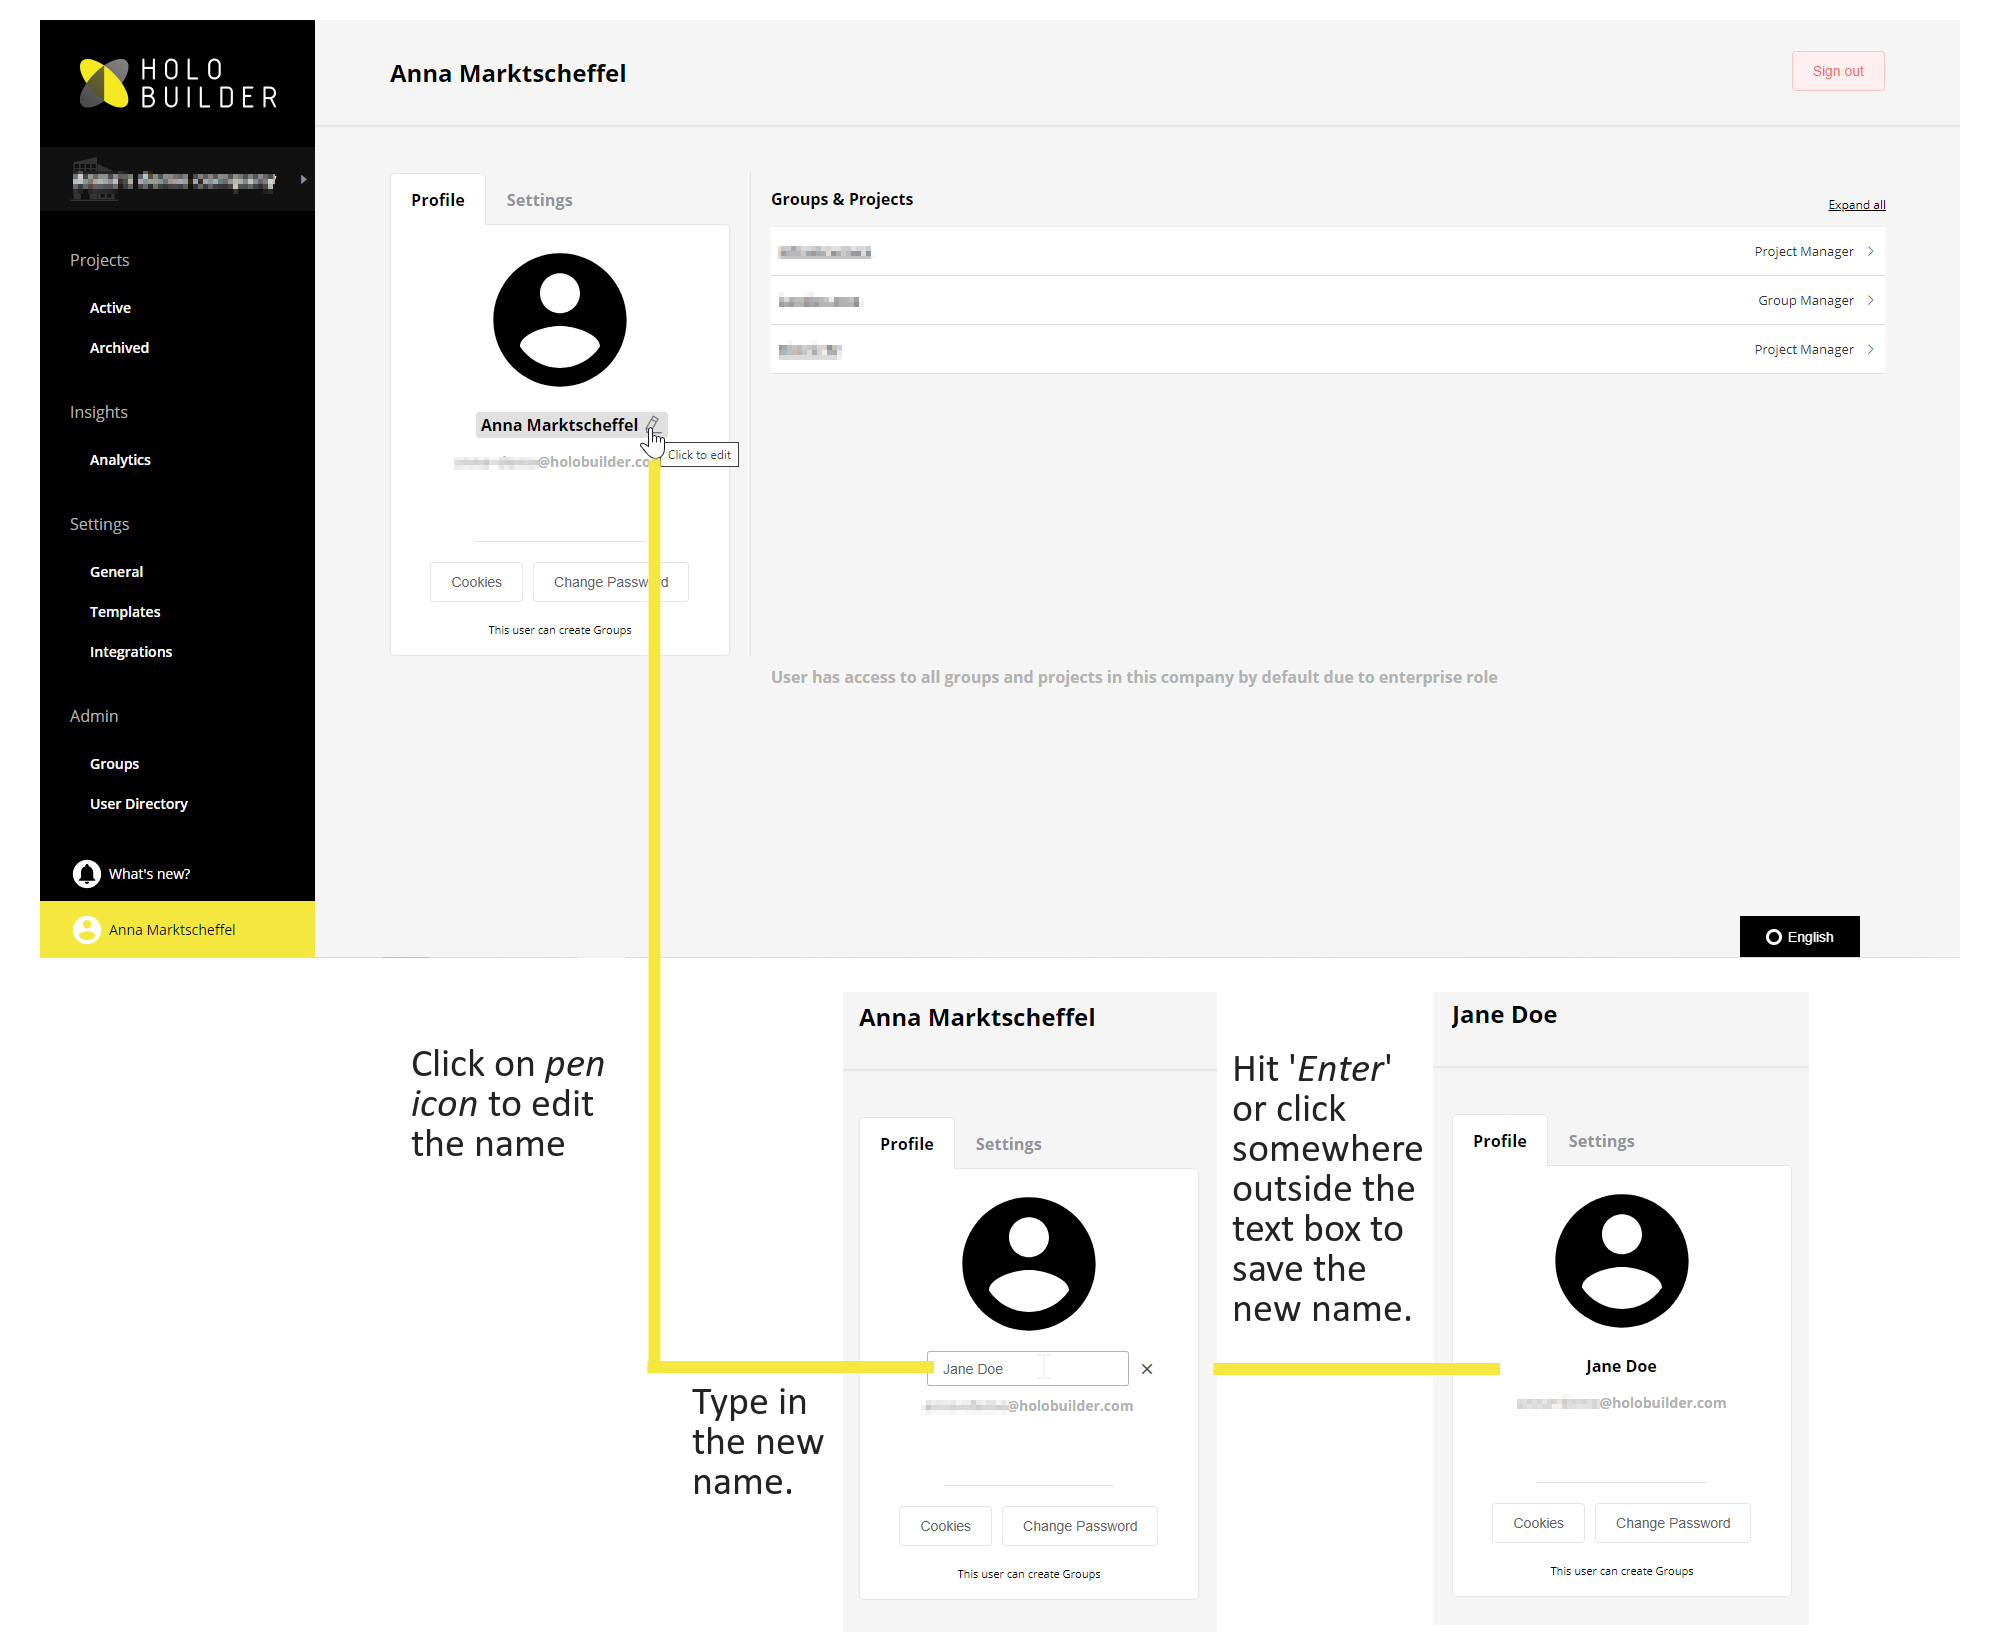 How to adjust the user name on your HoloBuilder account in the company dashboard